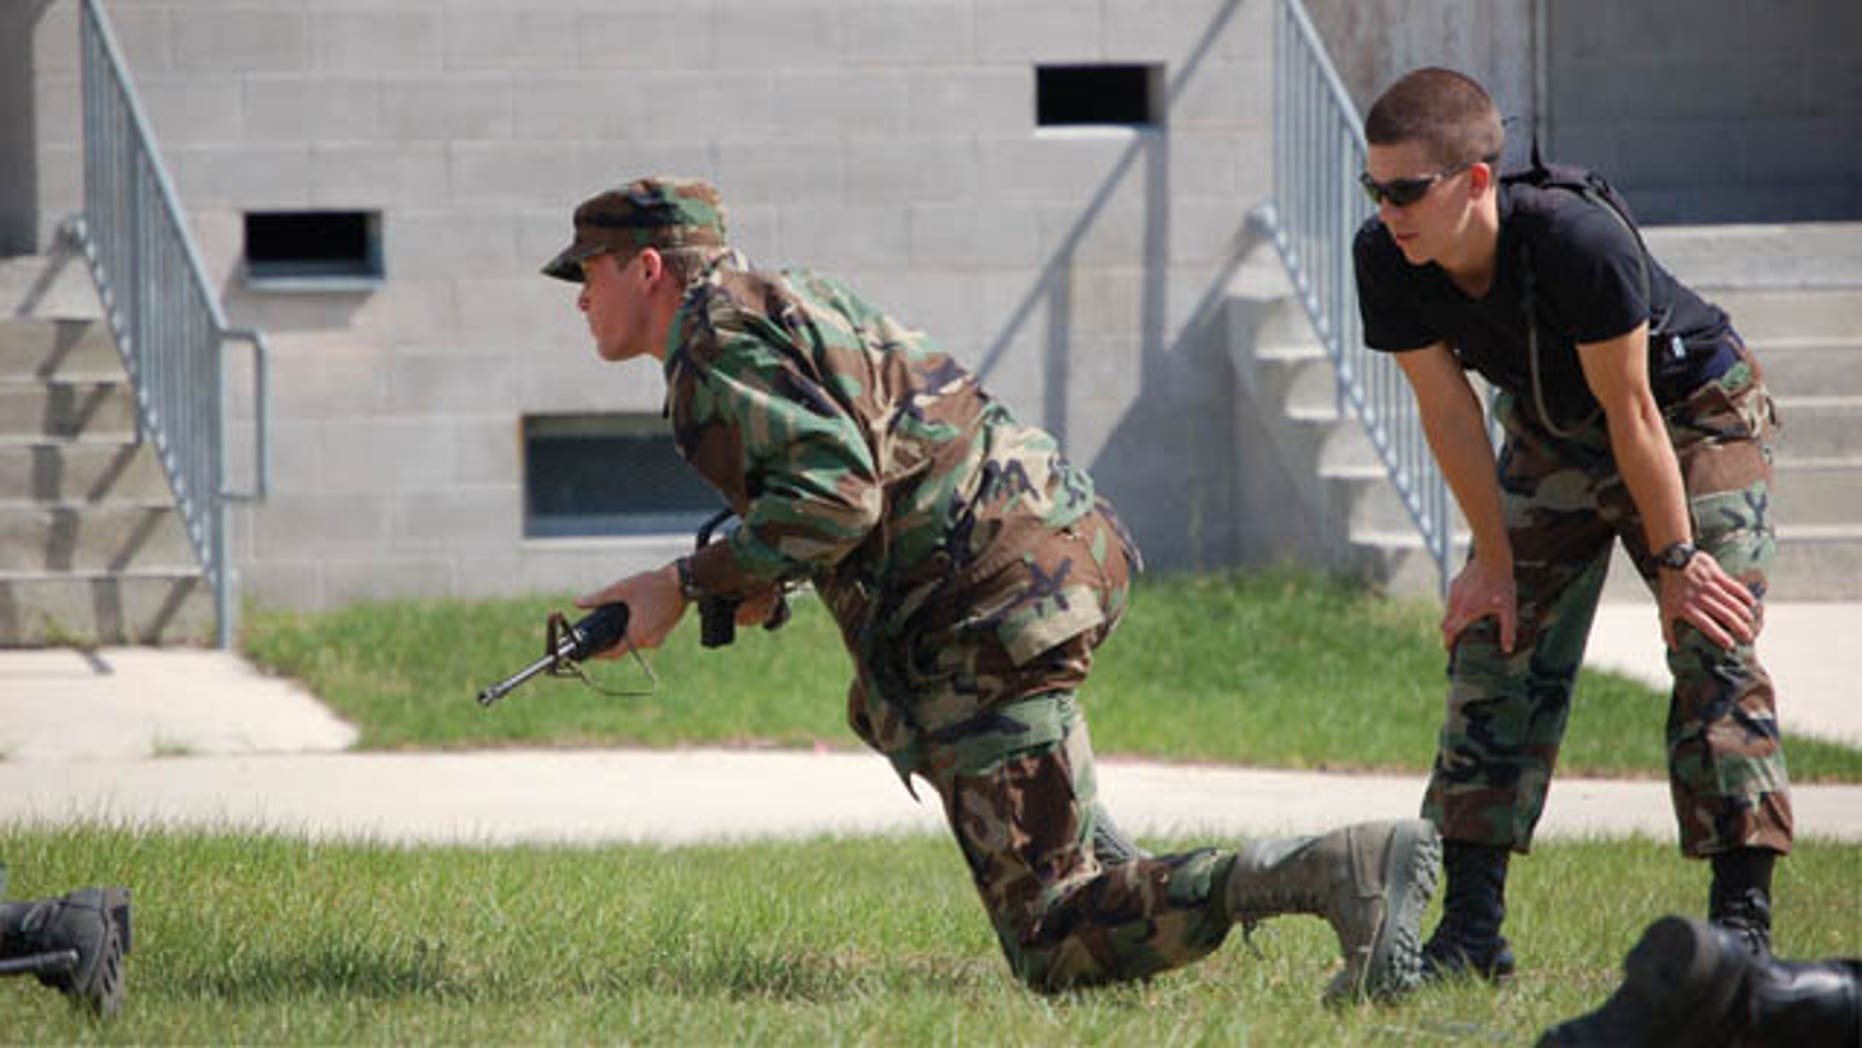 University of Florida ROTC cadets participate in leadership exercise April 25, 2010 at Camp Blanding, Fla.